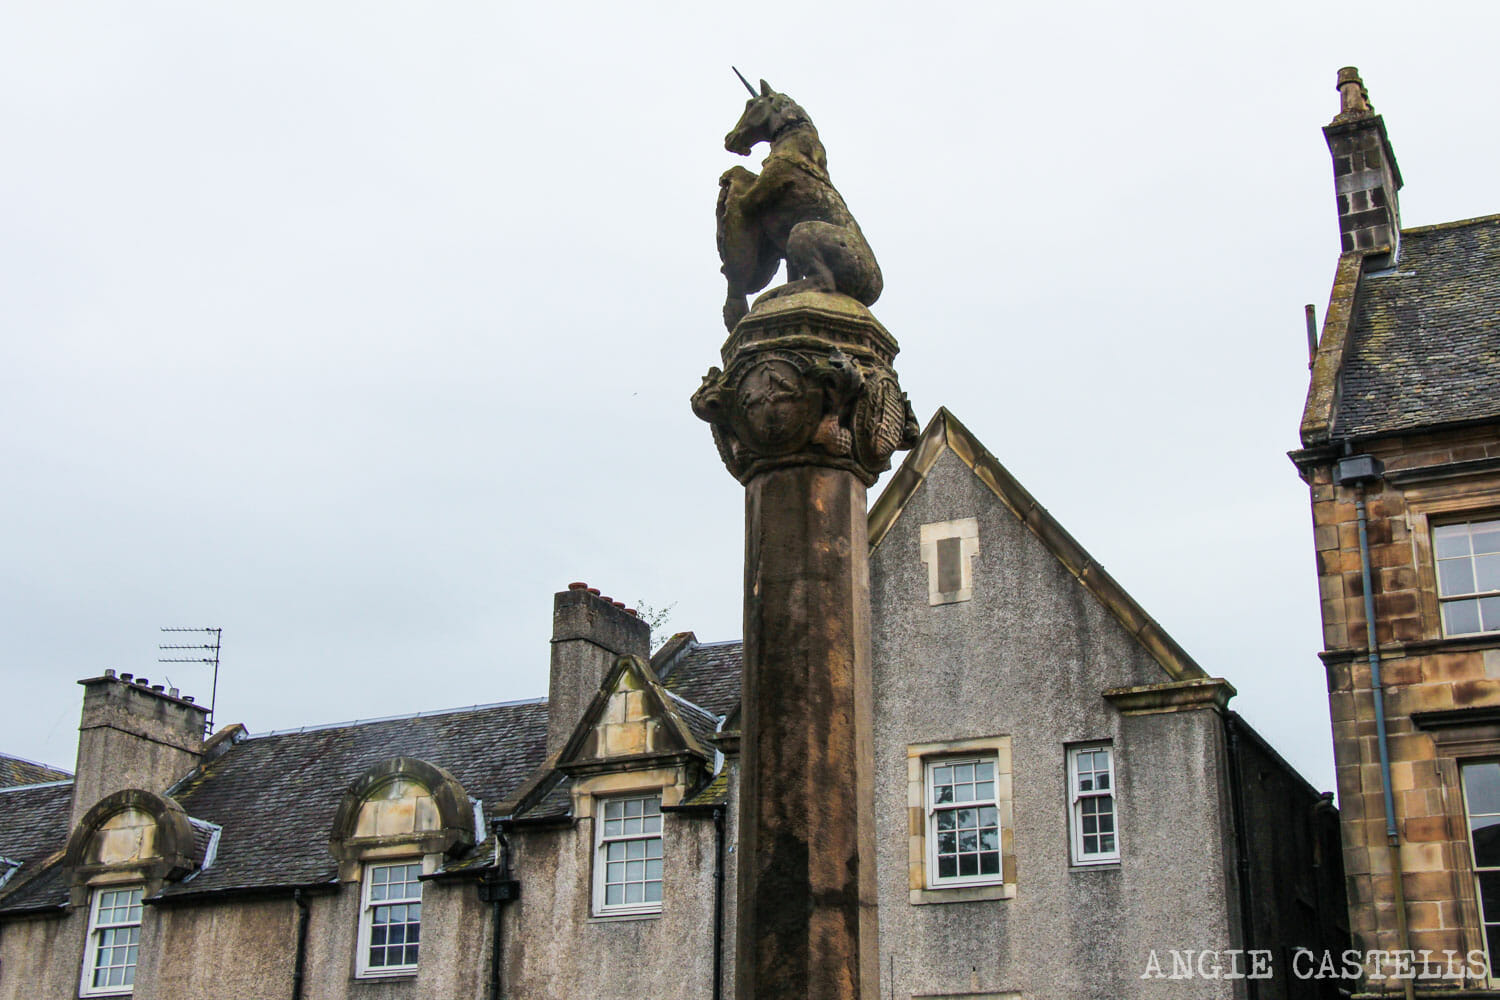 El unicornio, el animal nacional de Escocia - Mercat Cross Stirling